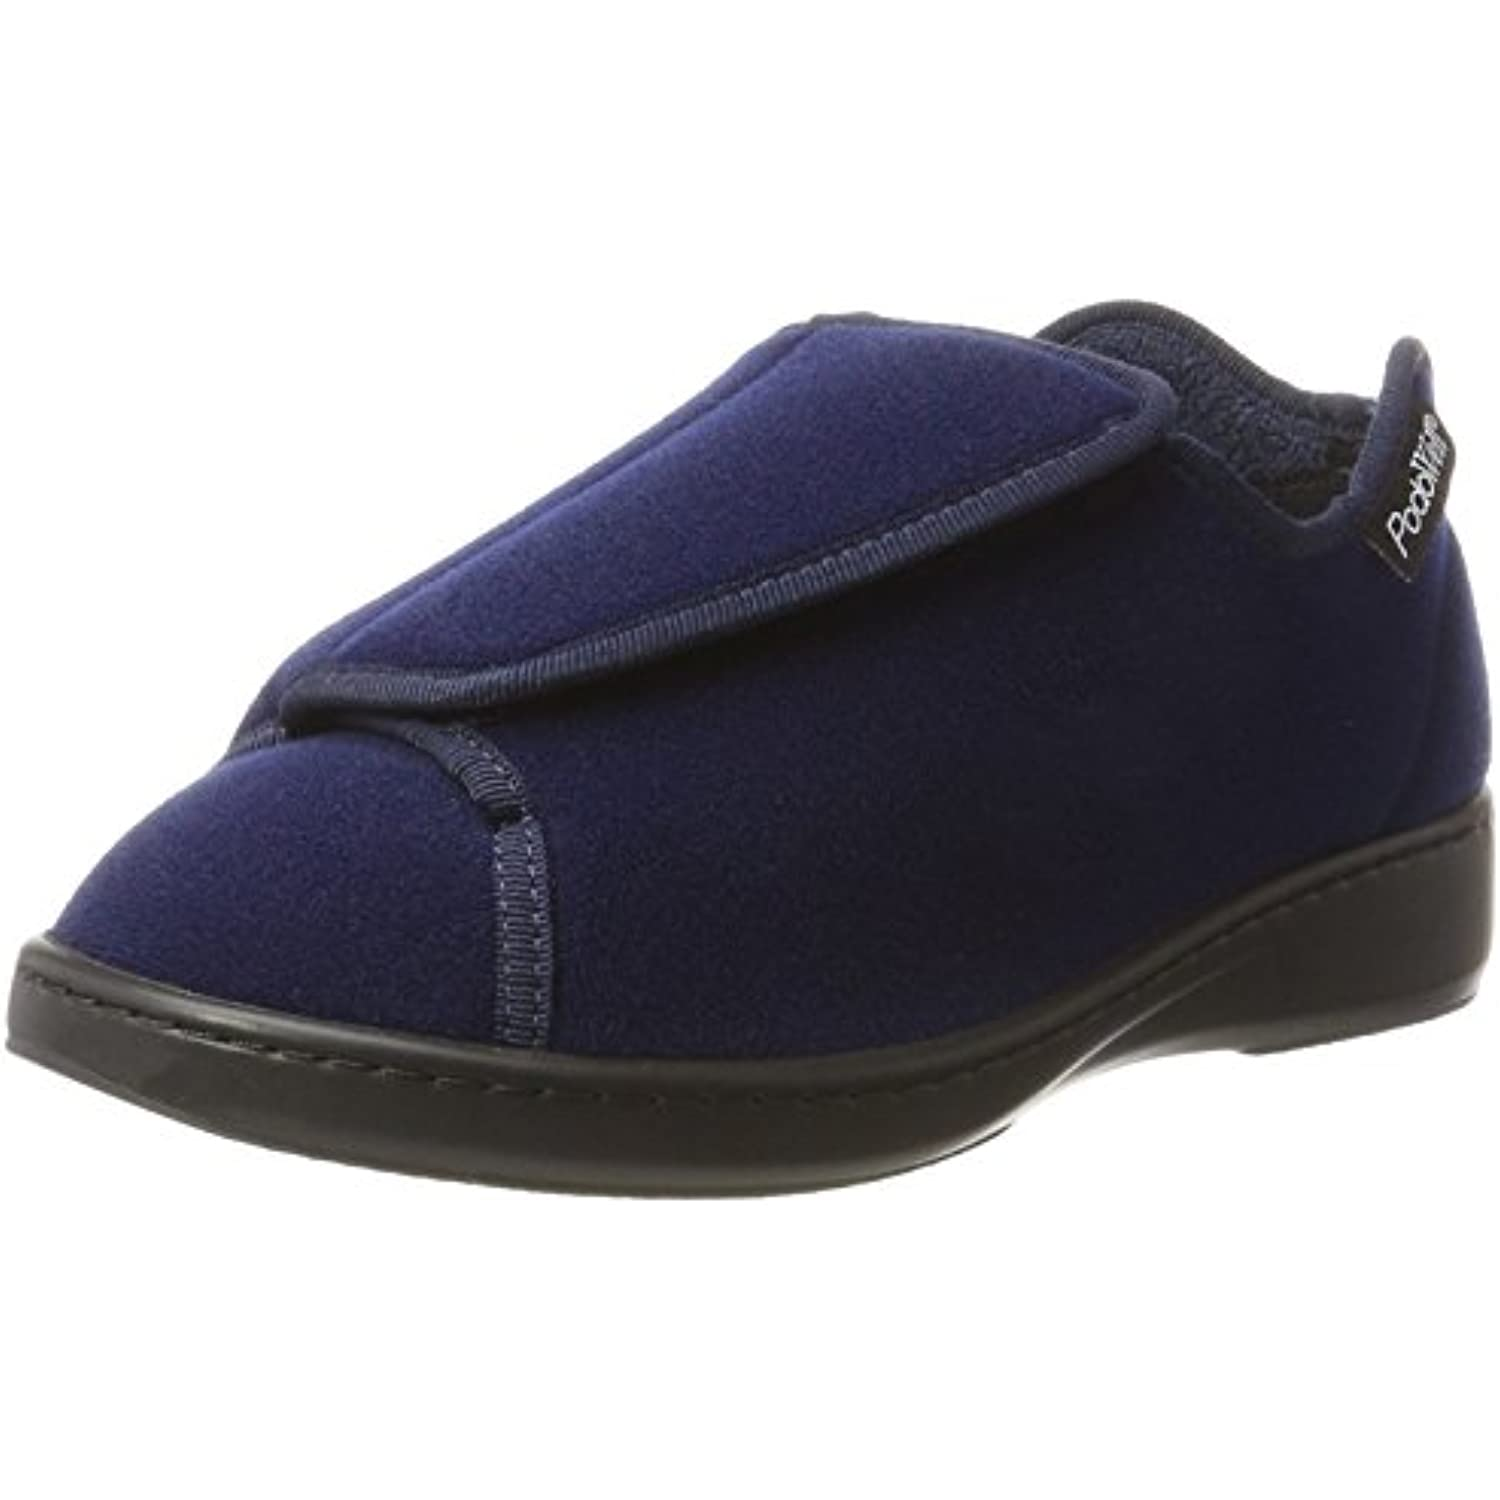 online store 6d16c 7294a Podowell Podowell Podowell ANITE, Chaussons Montants Mixte Adulte ...